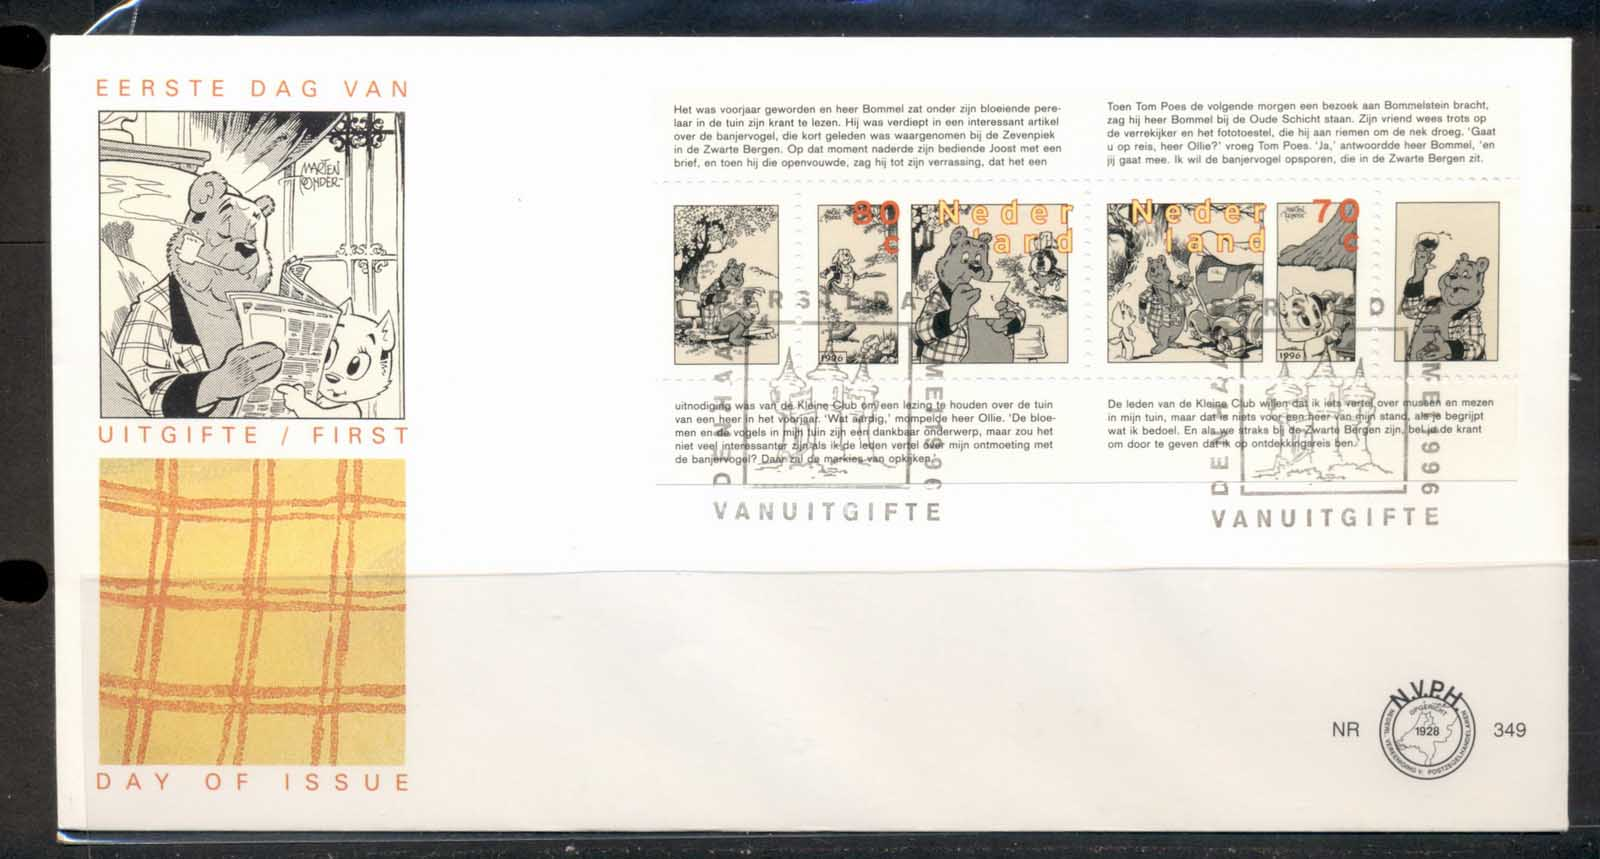 Netherlands 1996 Mr. Olivier B. Bommel, by Marten Toonder MS FDC